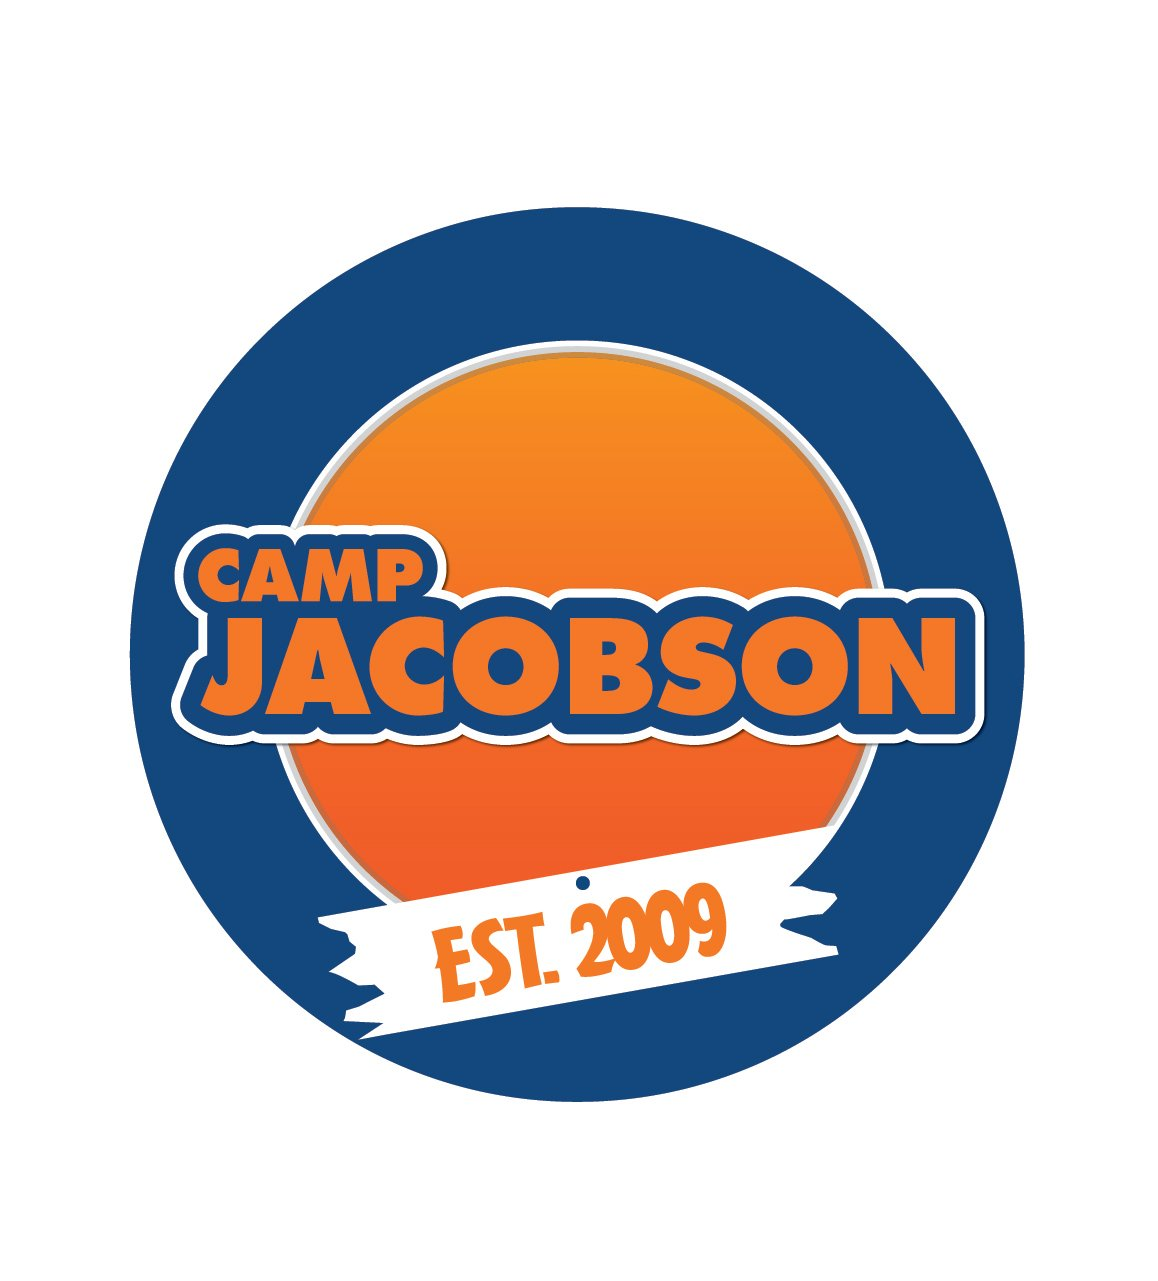 Camp Jacobson